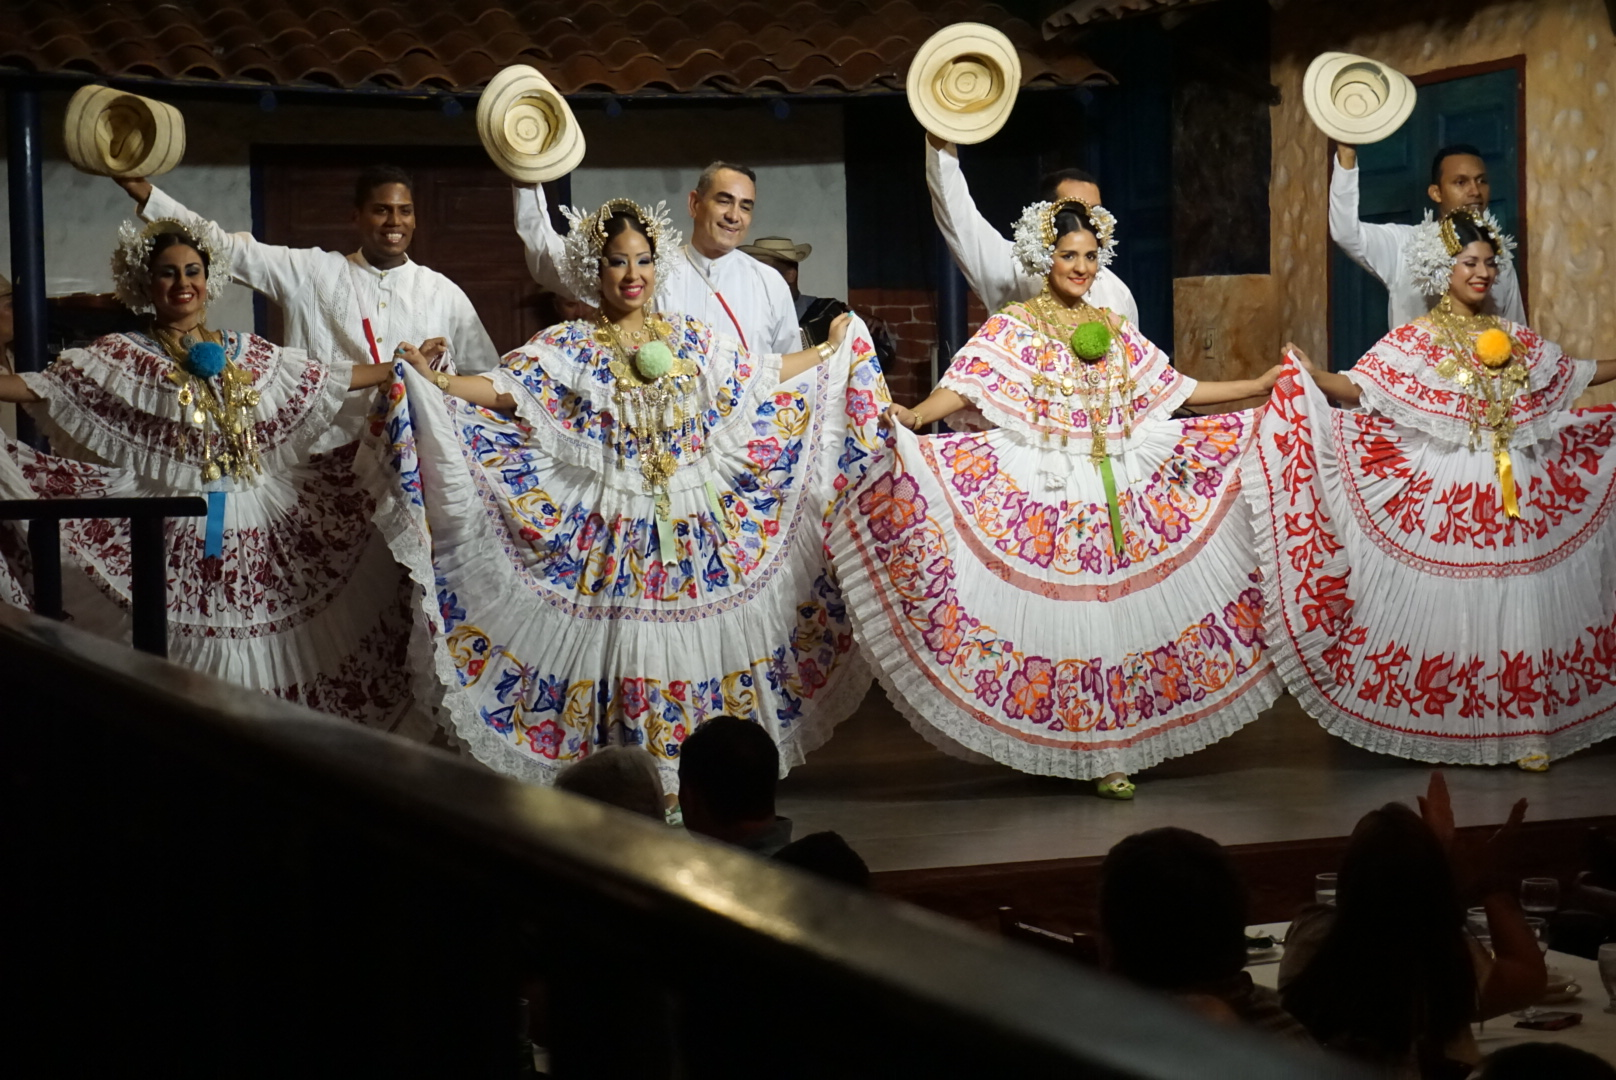 Dancers demonstrated traditional Panamanian dress and customs at Tinajas restaurant.